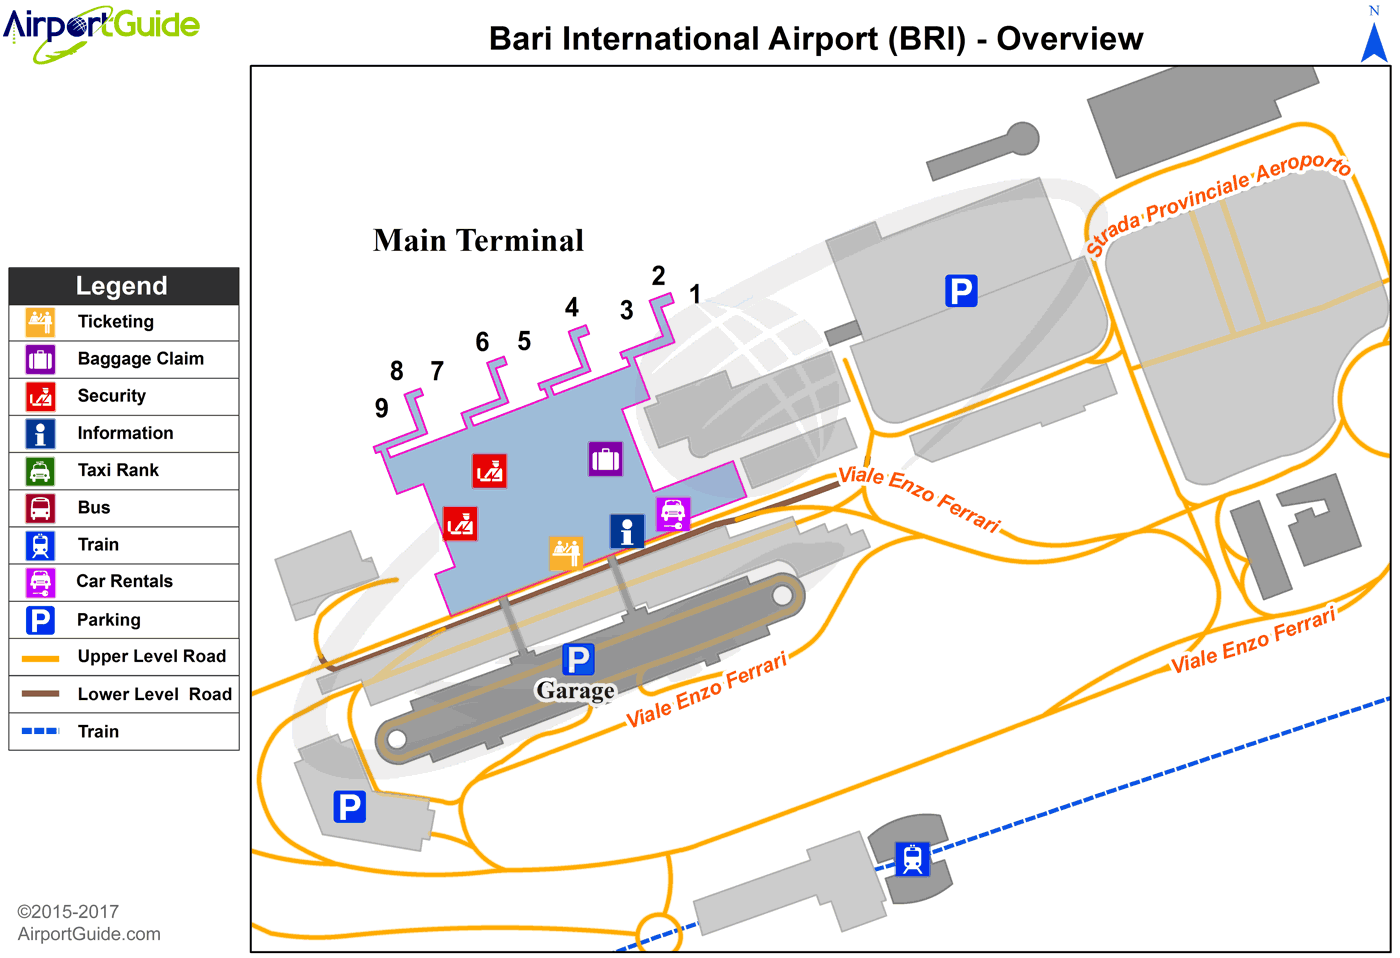 Bari - Bari / Palese International (BRI) Airport Terminal Map - Overview